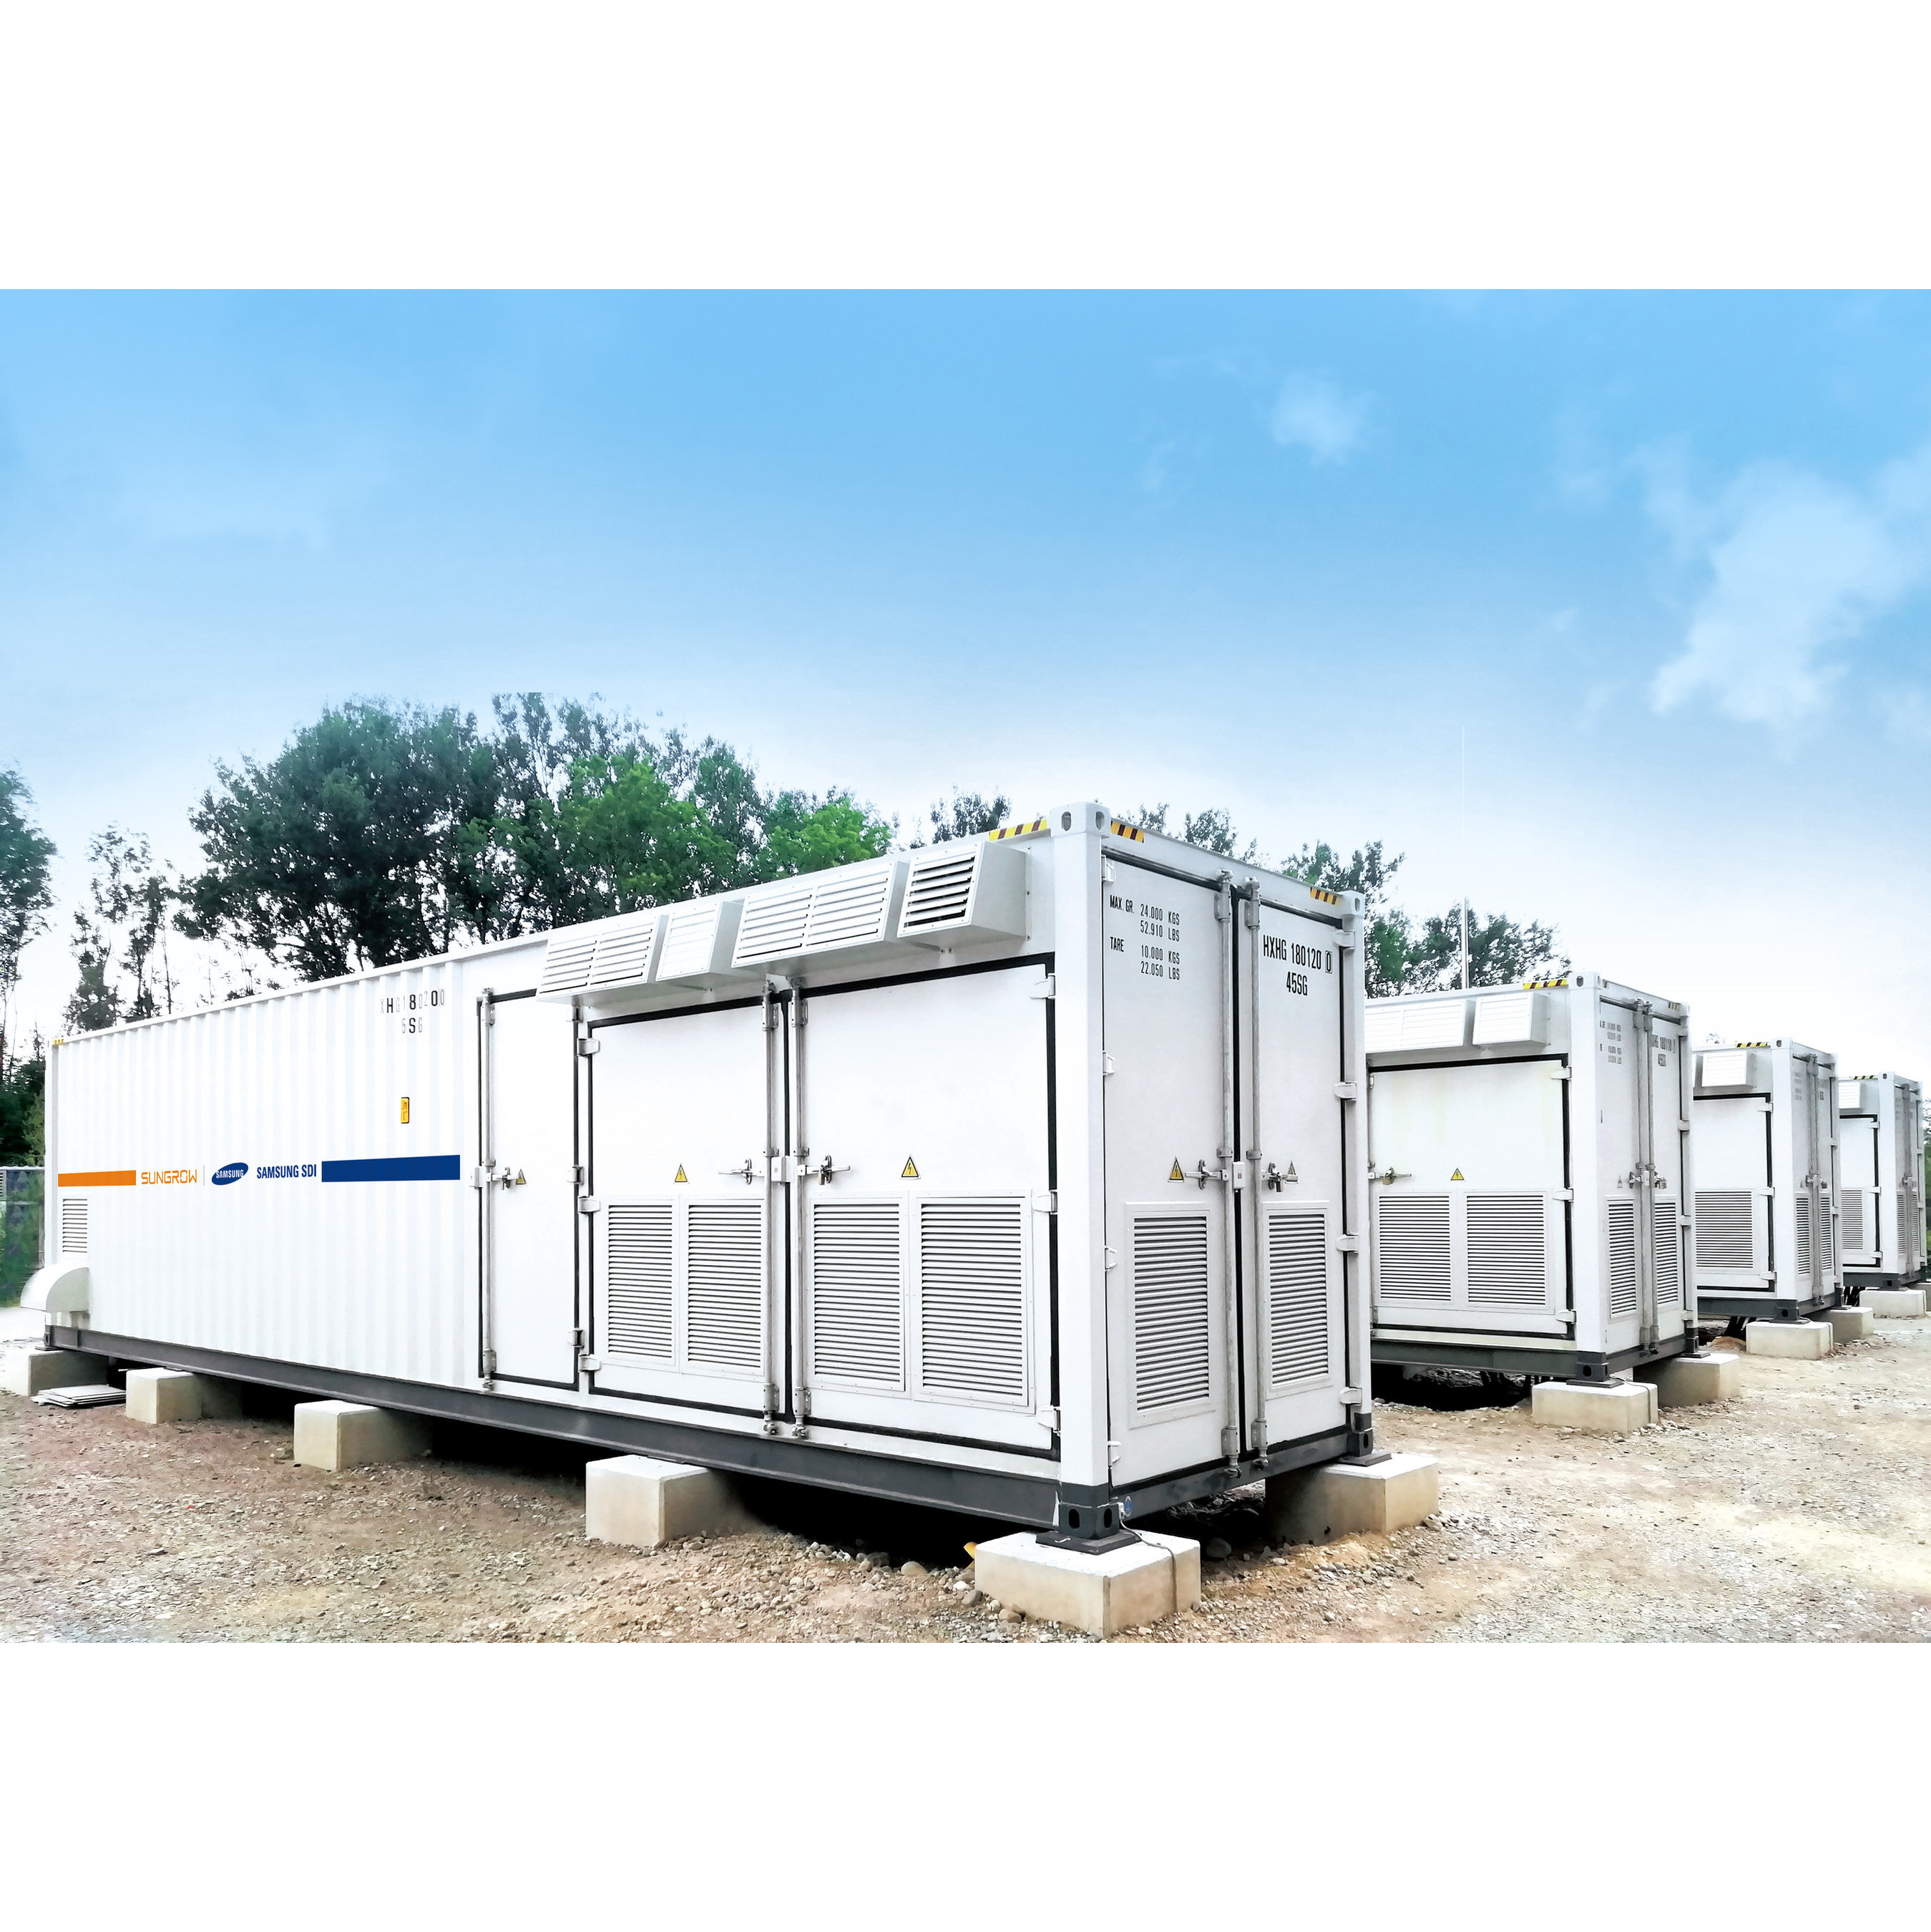 Sungrow Bags Supply Contract with Smart Power for a 30MW/30MWh Energy Storage Project in Germany